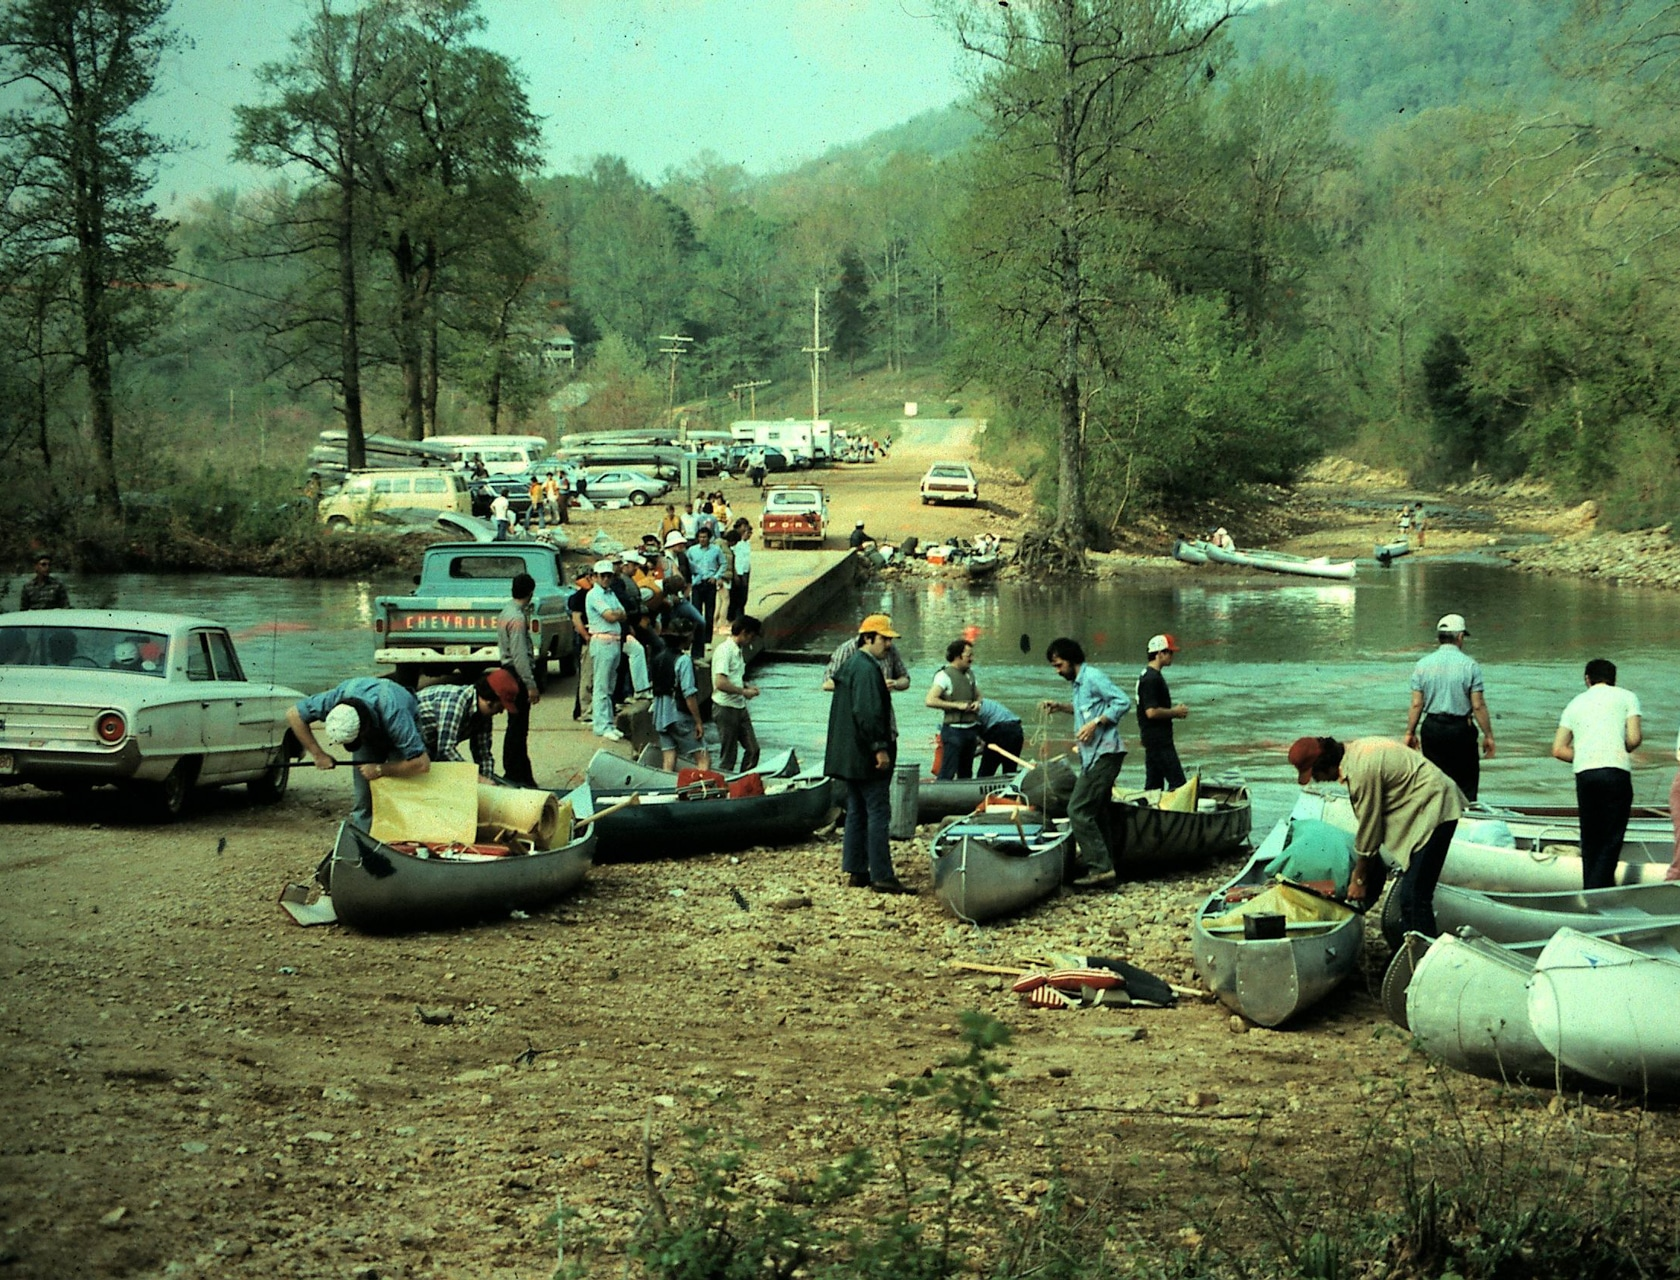 Vintage image from 70's of people putting on canoes at the Ponca Access.